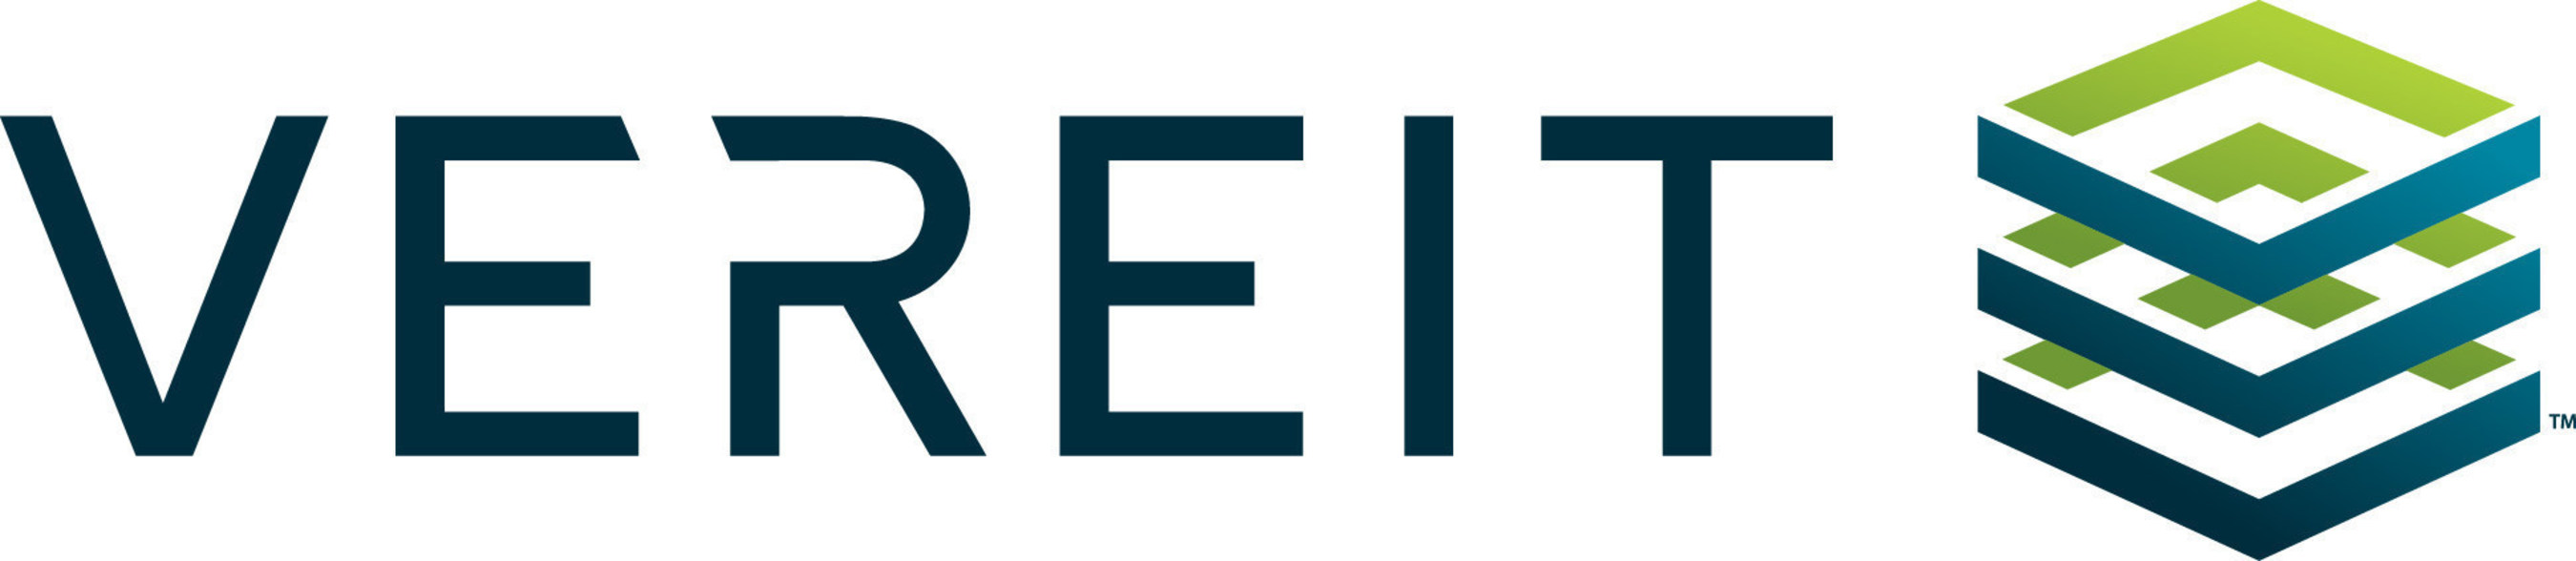 VEREIT is a leading, full-service real estate operating company with investment management capability that owns and actively manages a diversified portfolio of retail, restaurant, office and industrial assets.